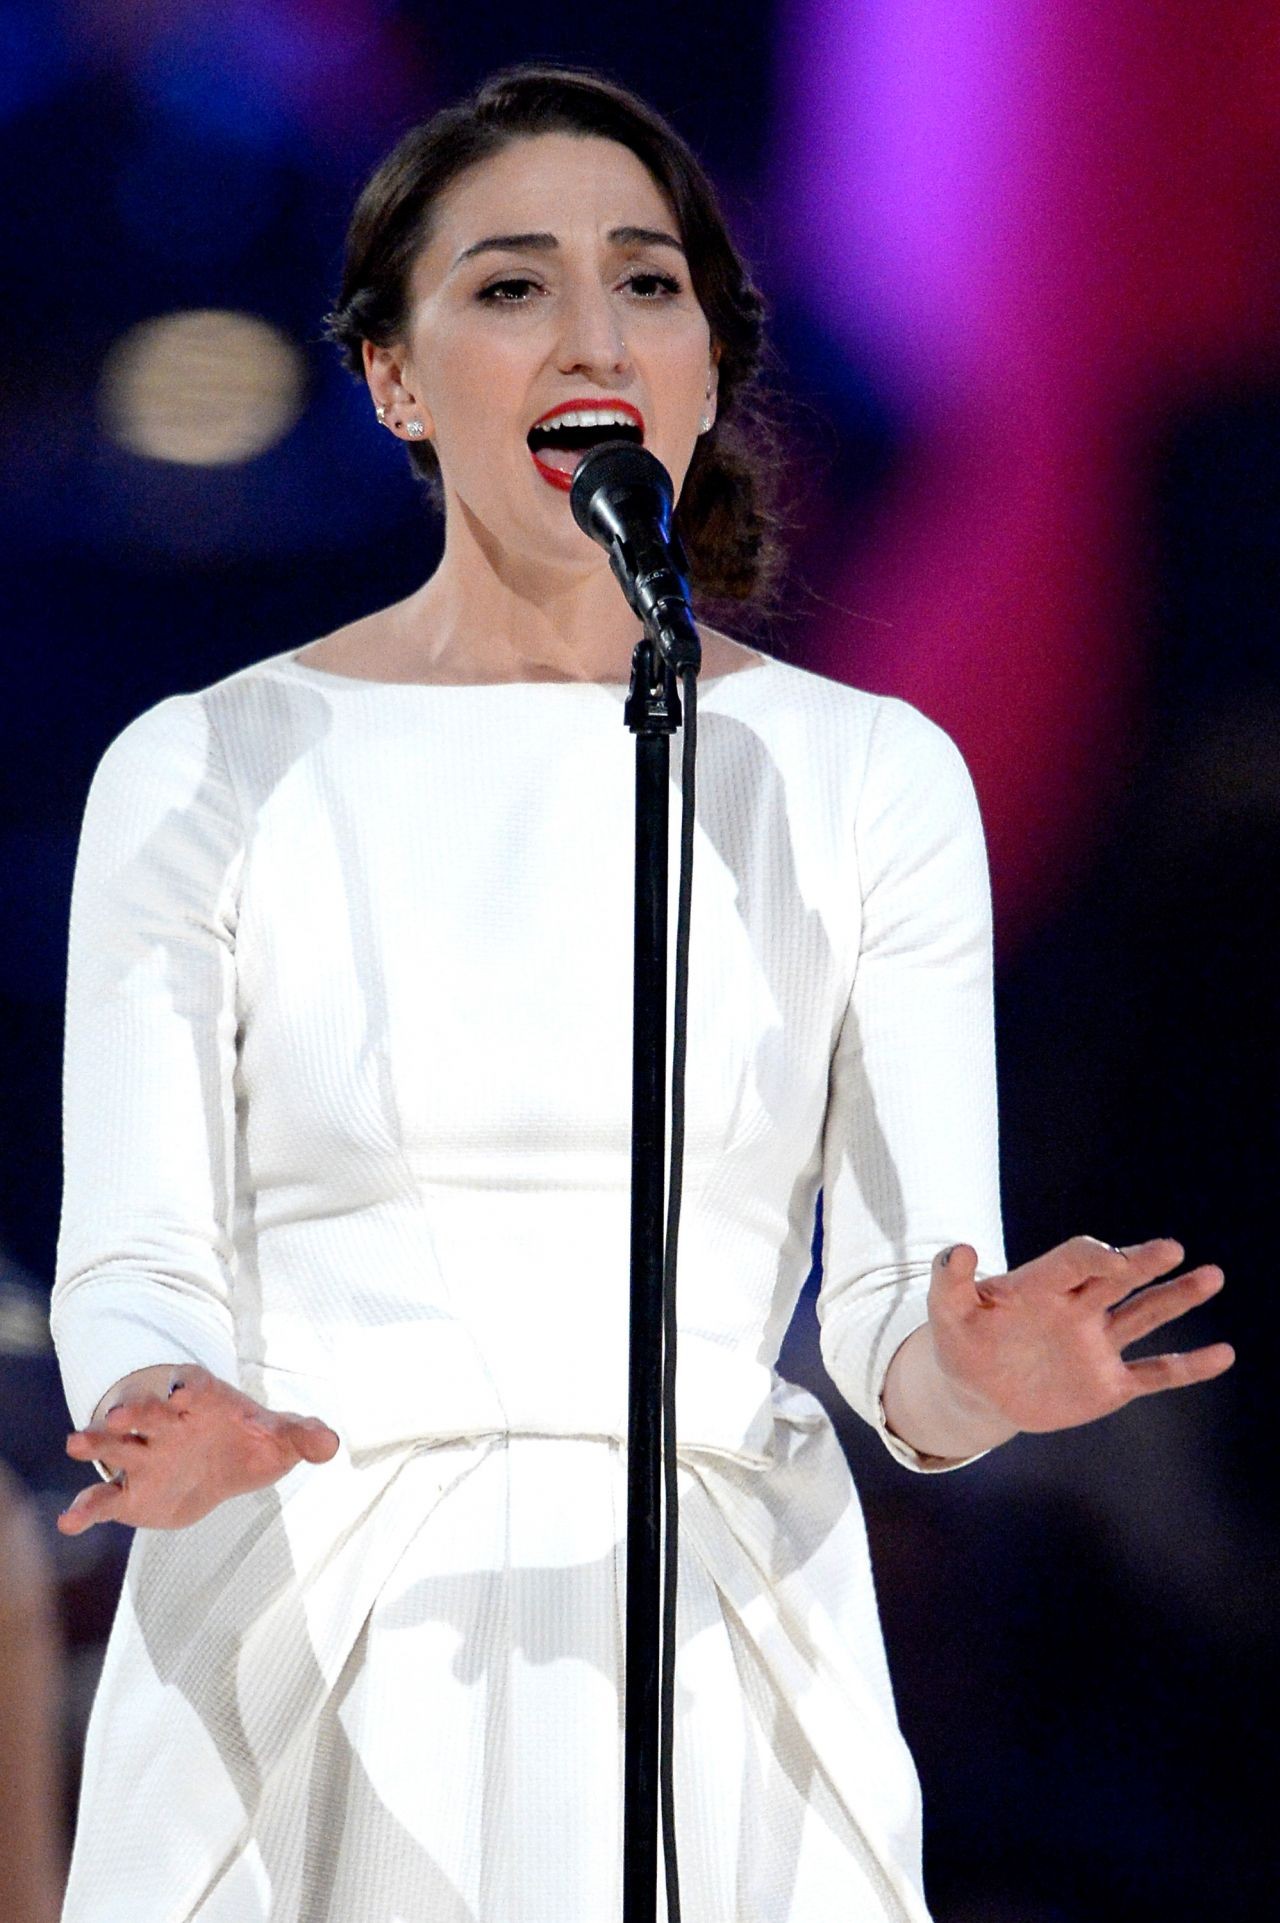 Sara Bareilles Performs at 2014 MusiCares Person of the Year Gala